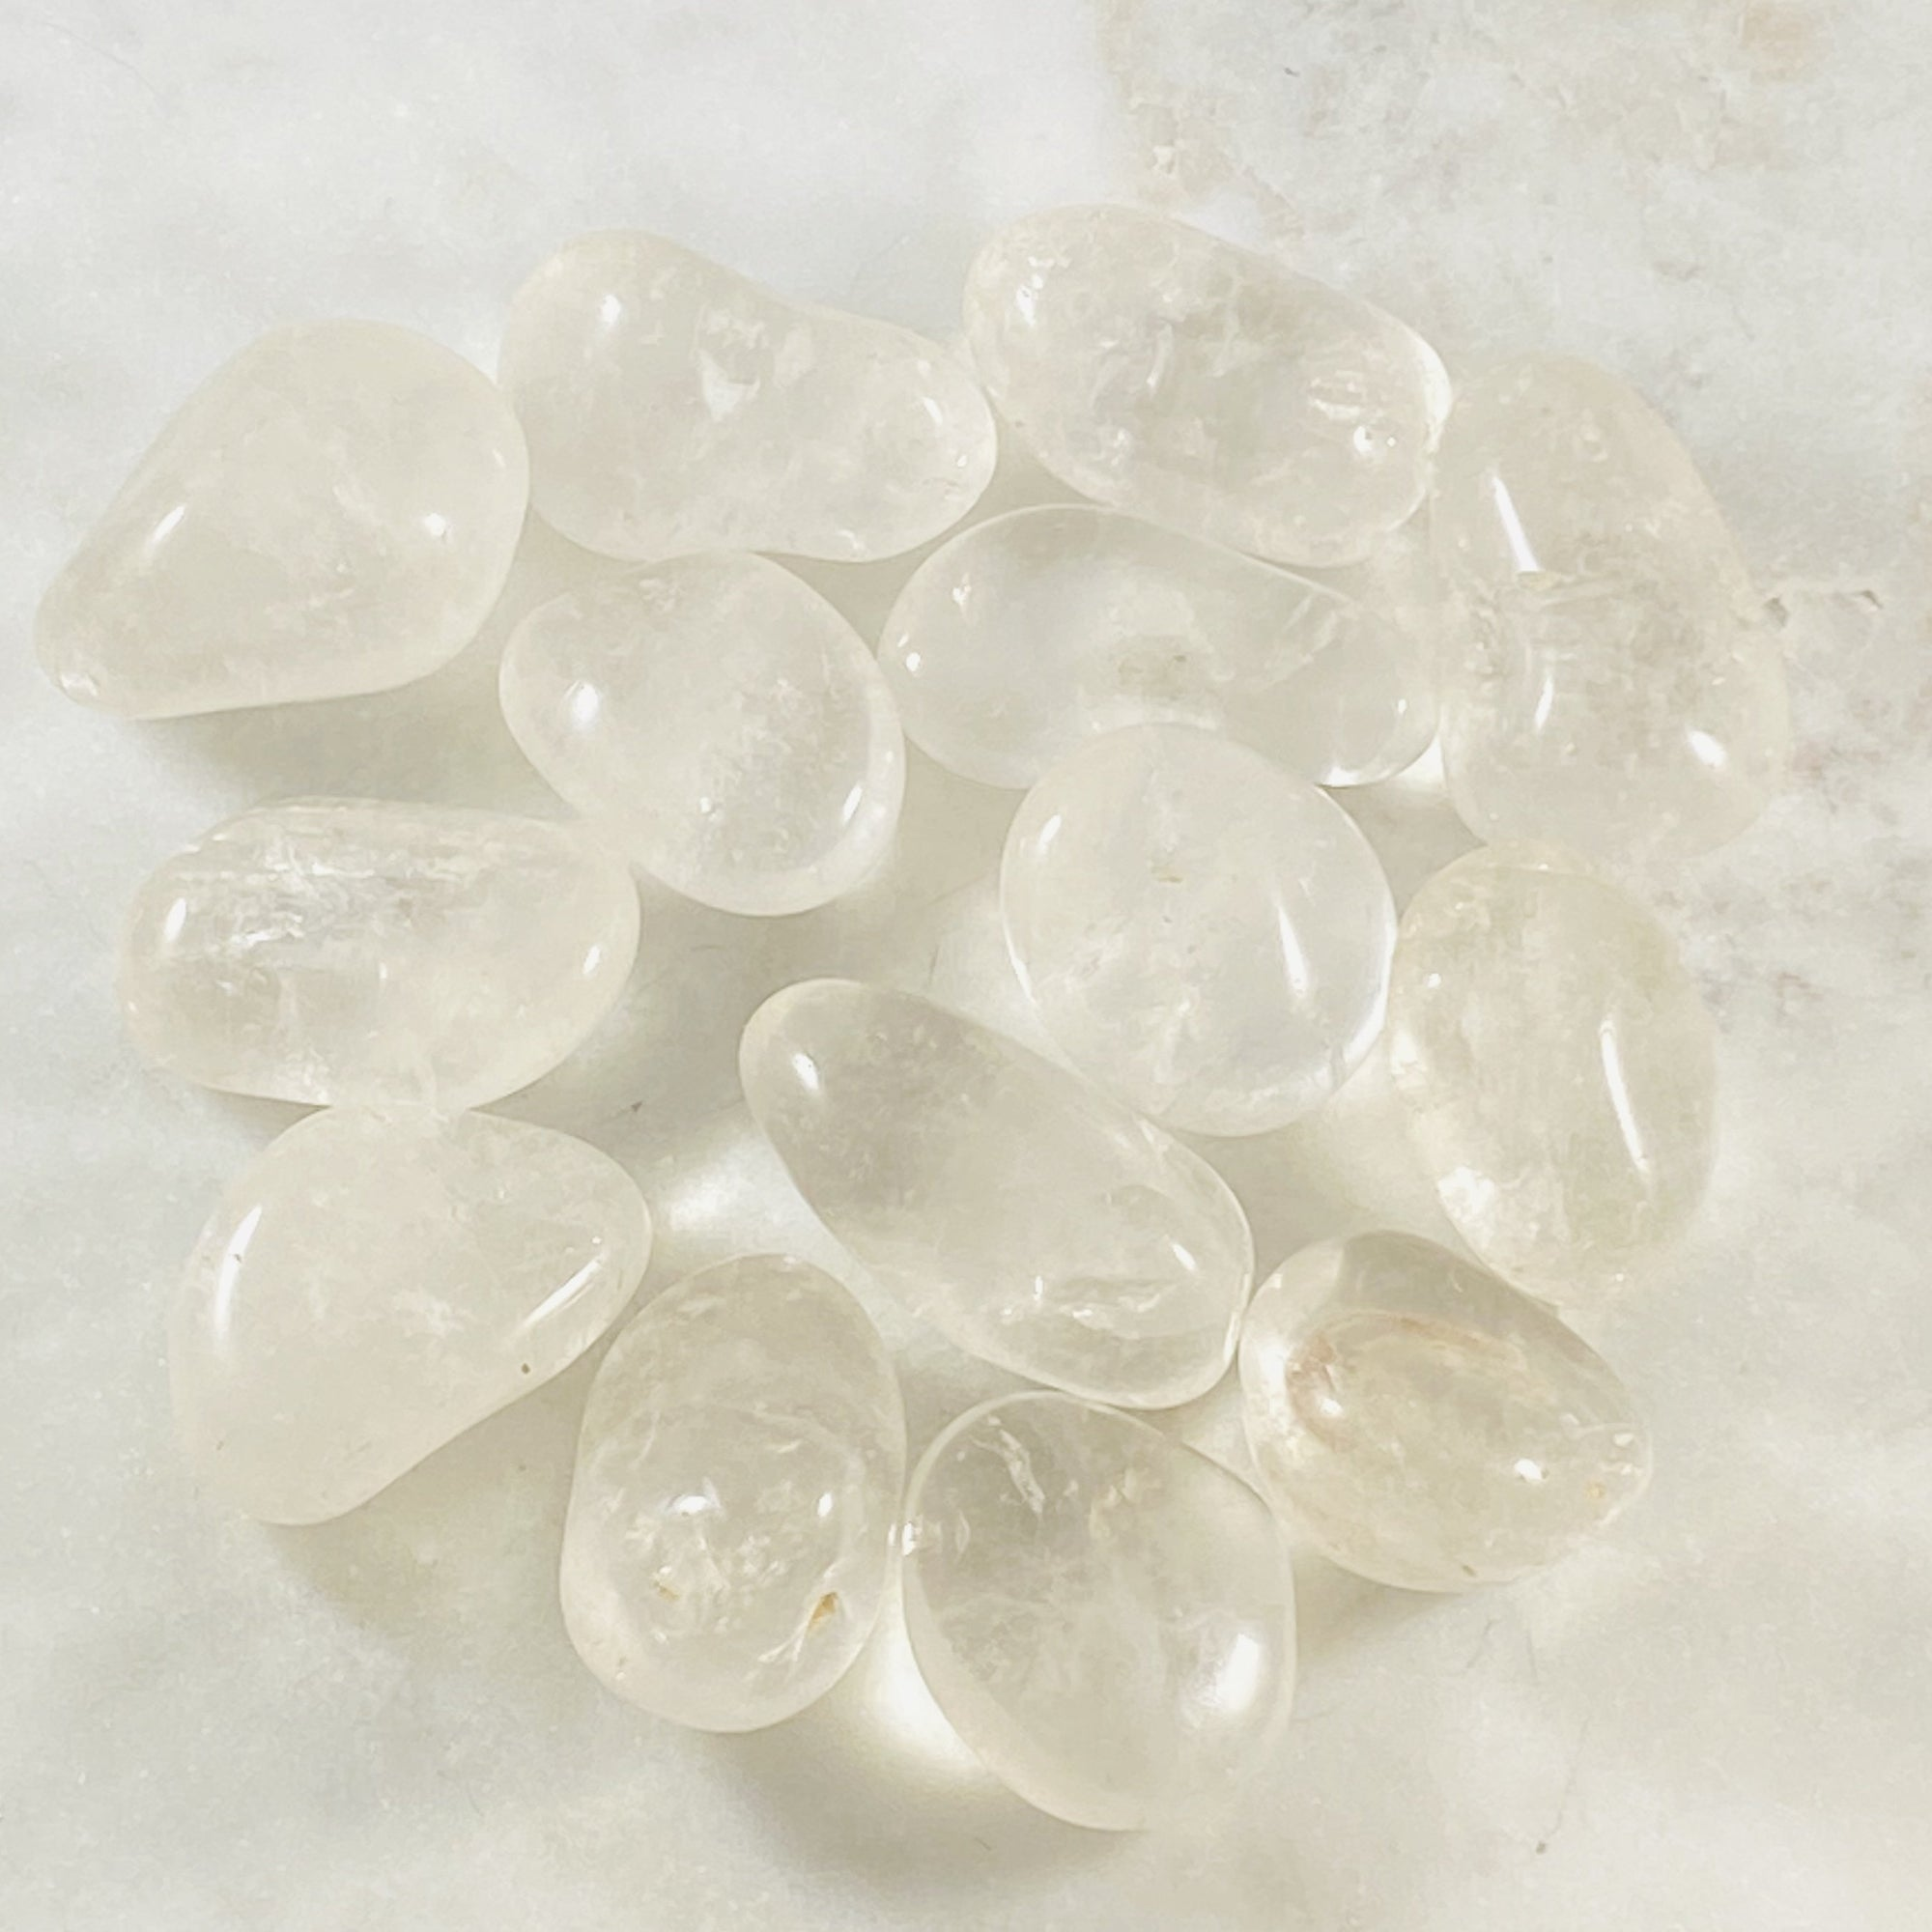 Healing quartz crystal for clearing negativity